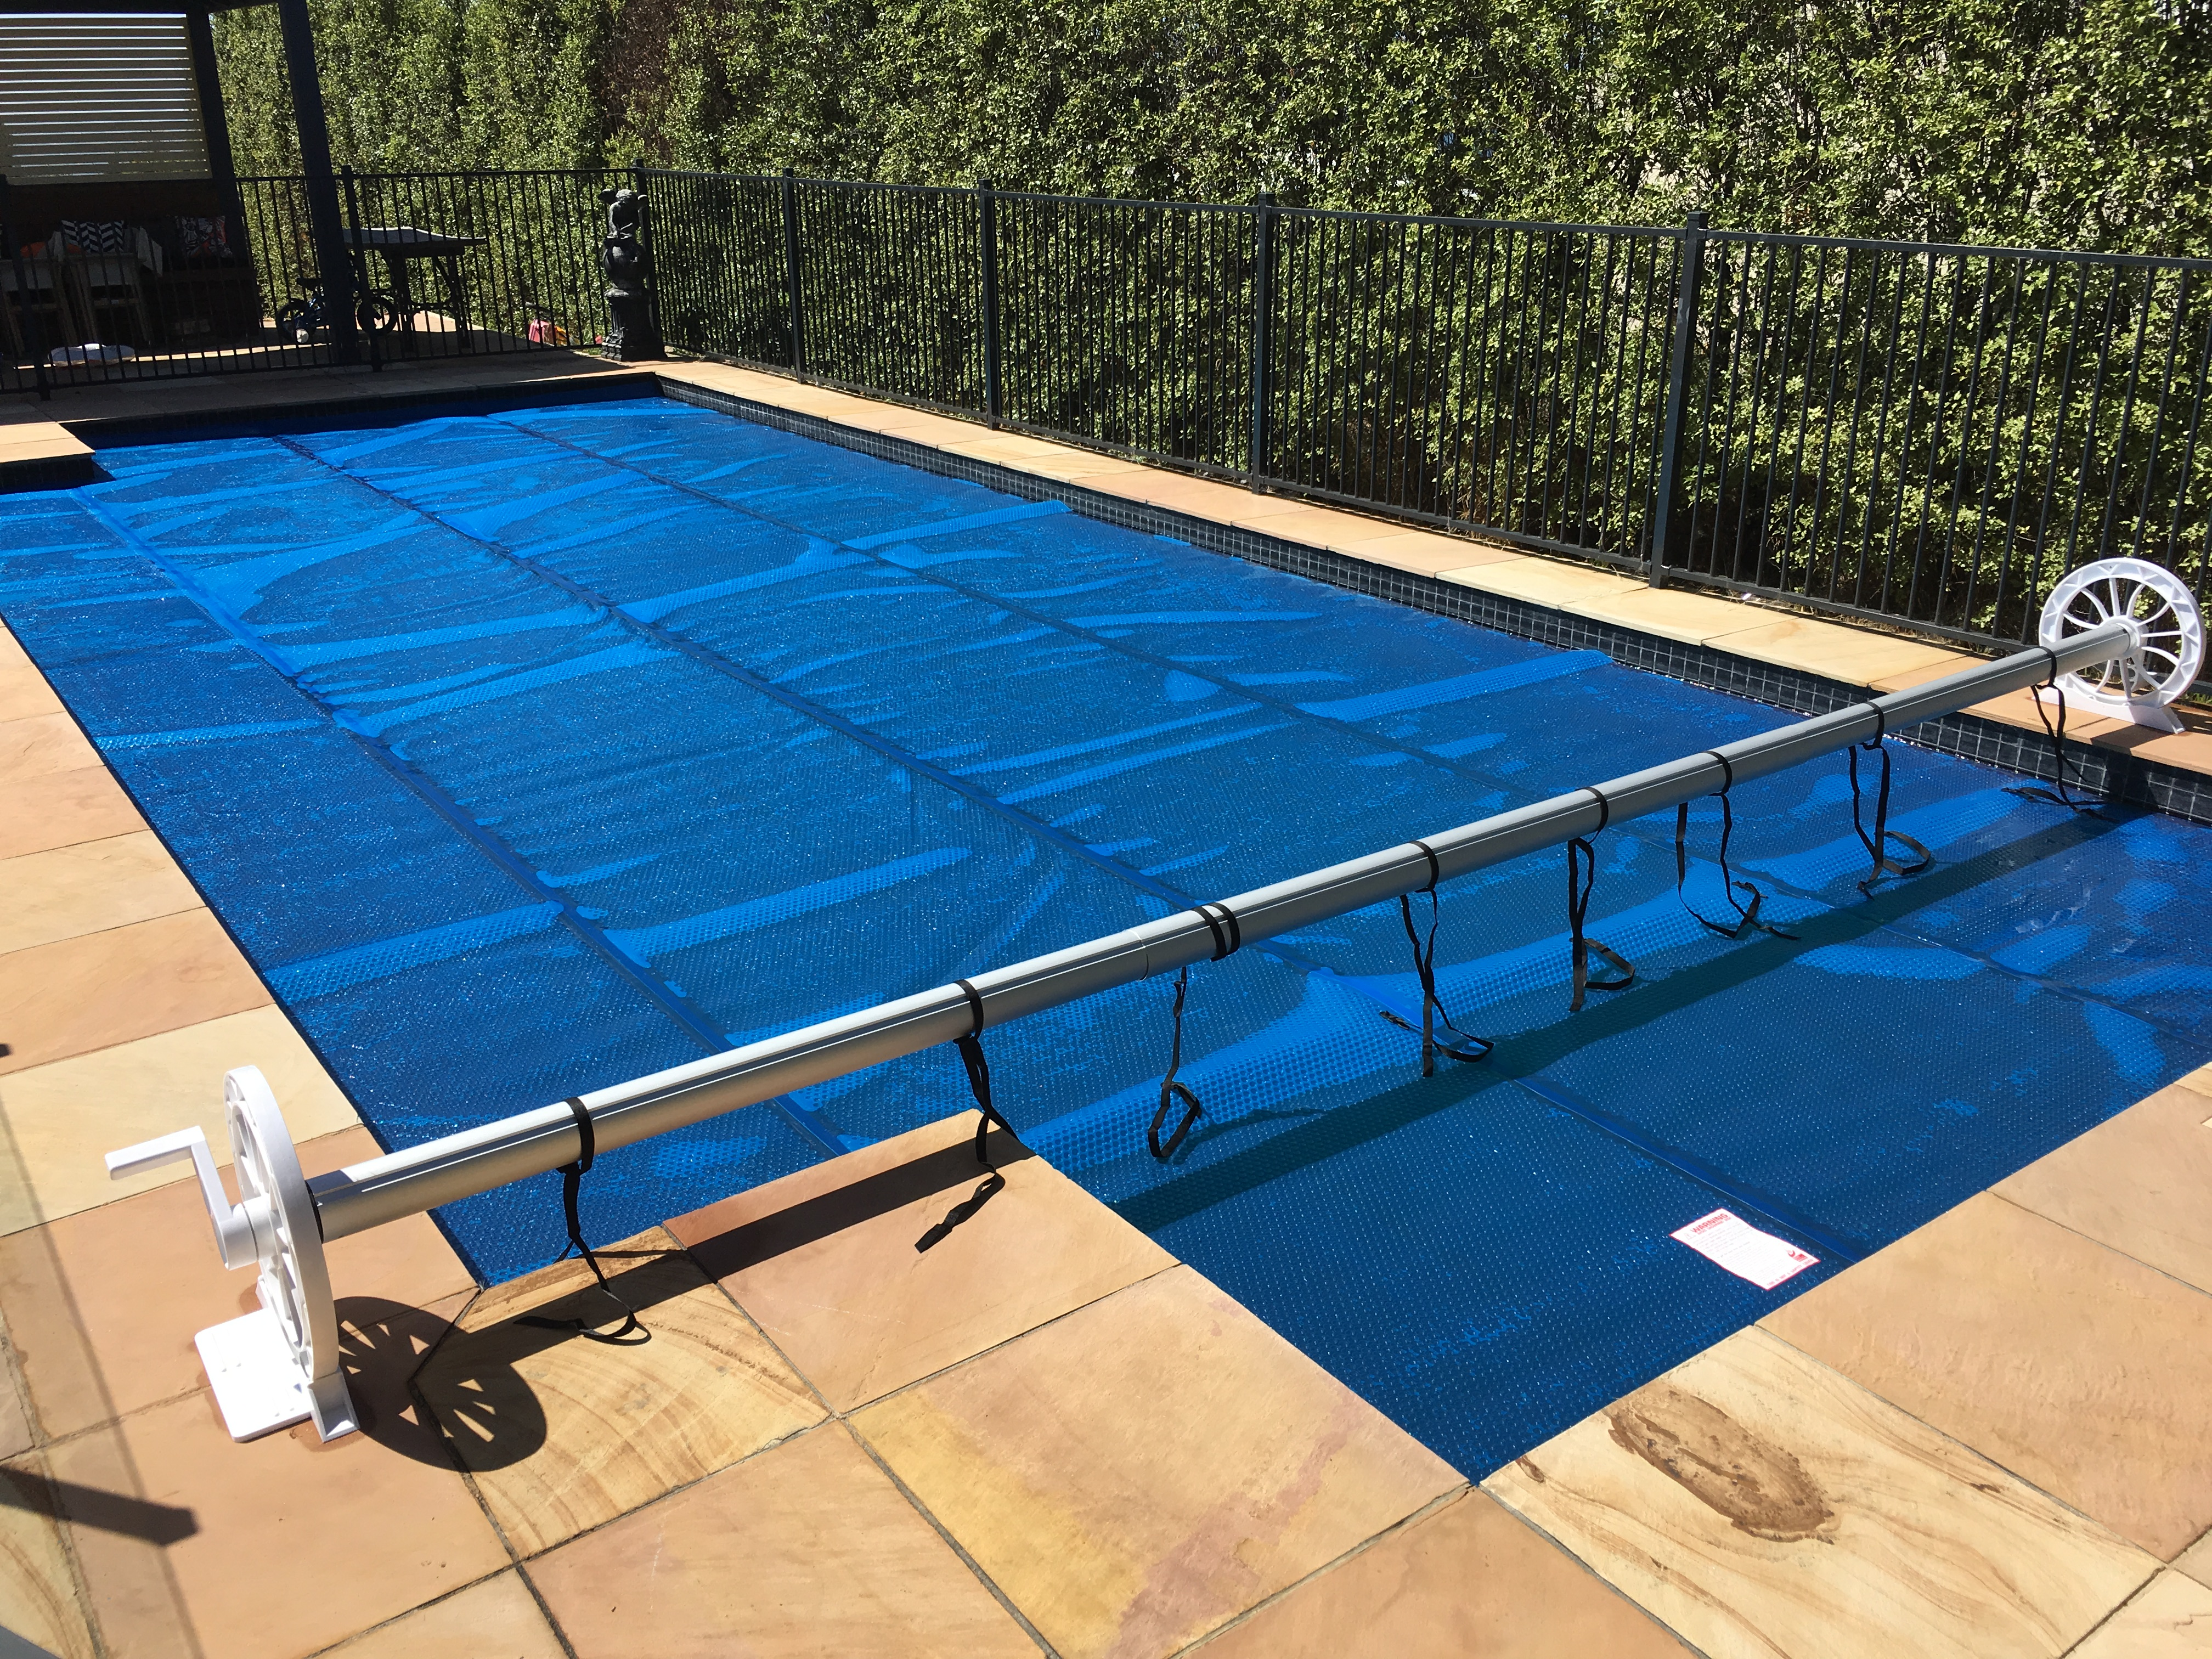 Reel position aqua pool covers melbourne australia for Swimming pool covers melbourne